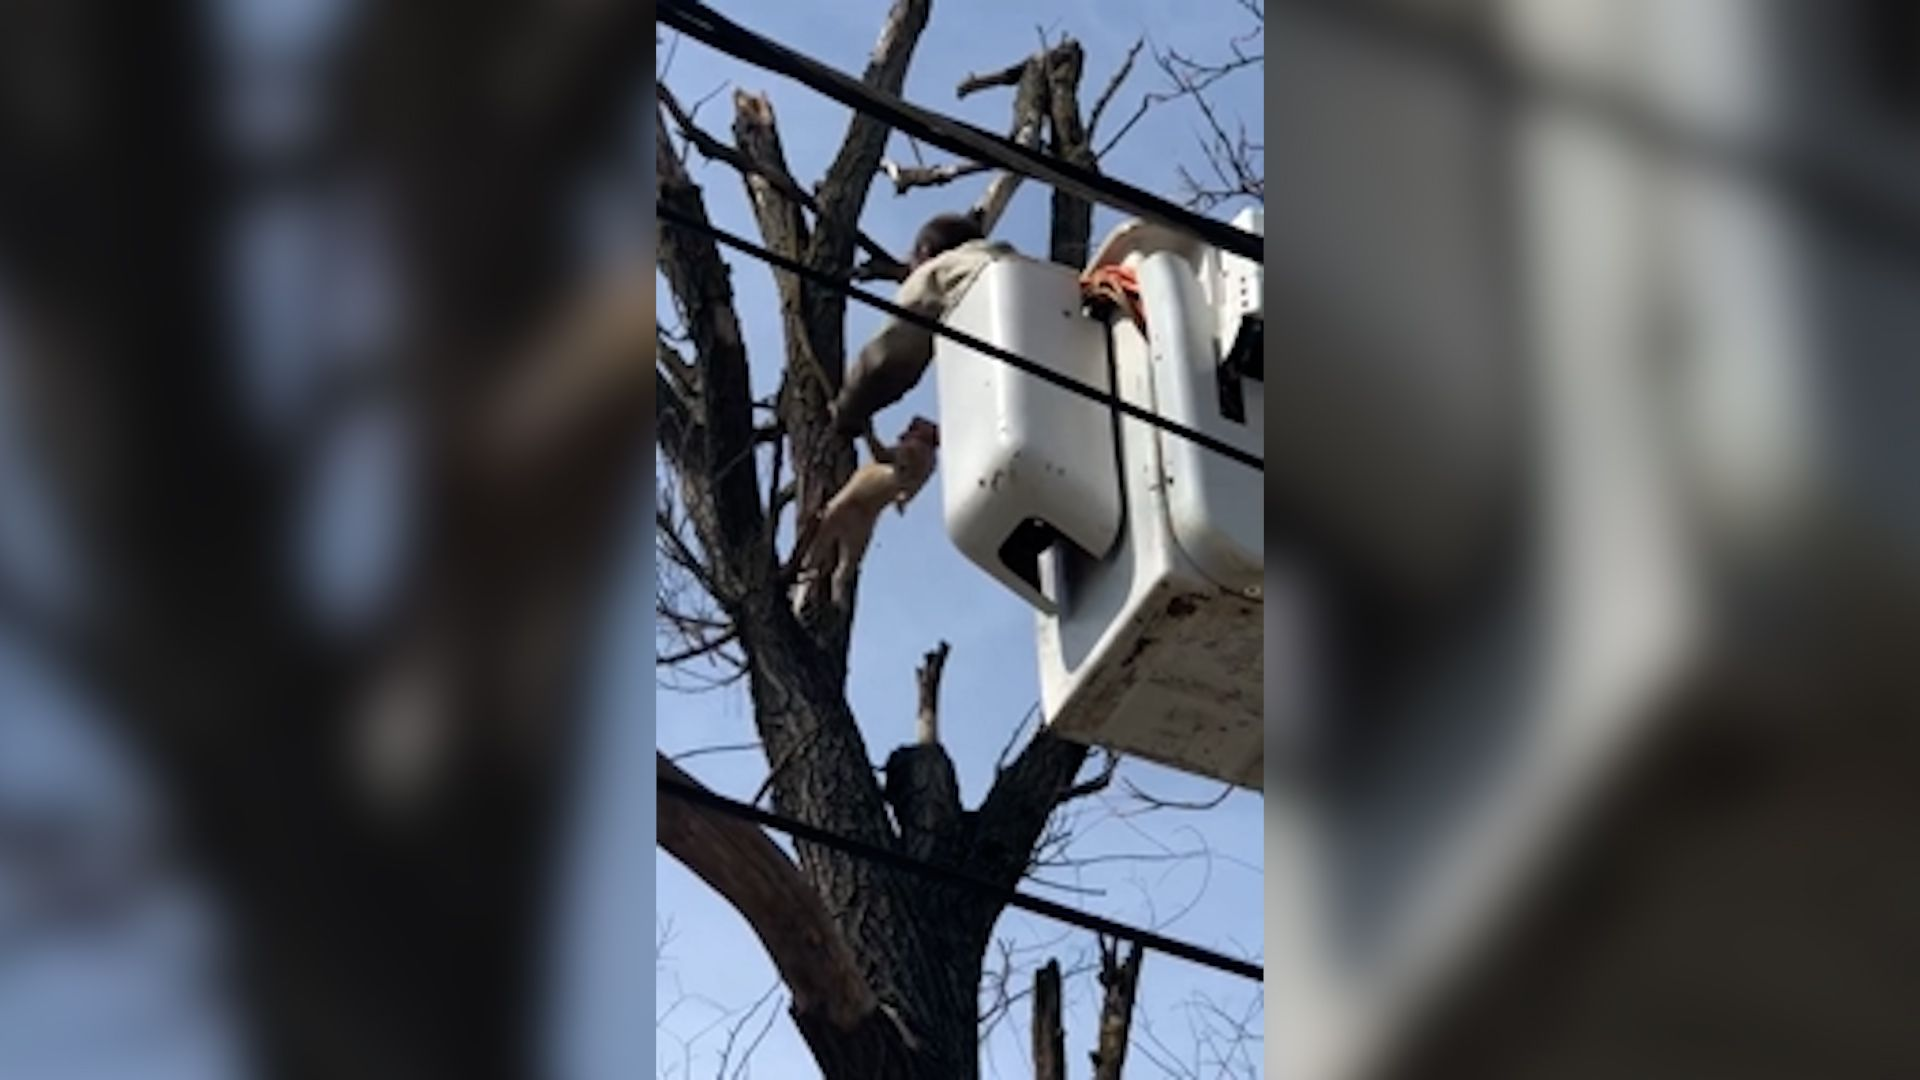 Cat stuck in tree safe and sound after cherry picker rescue